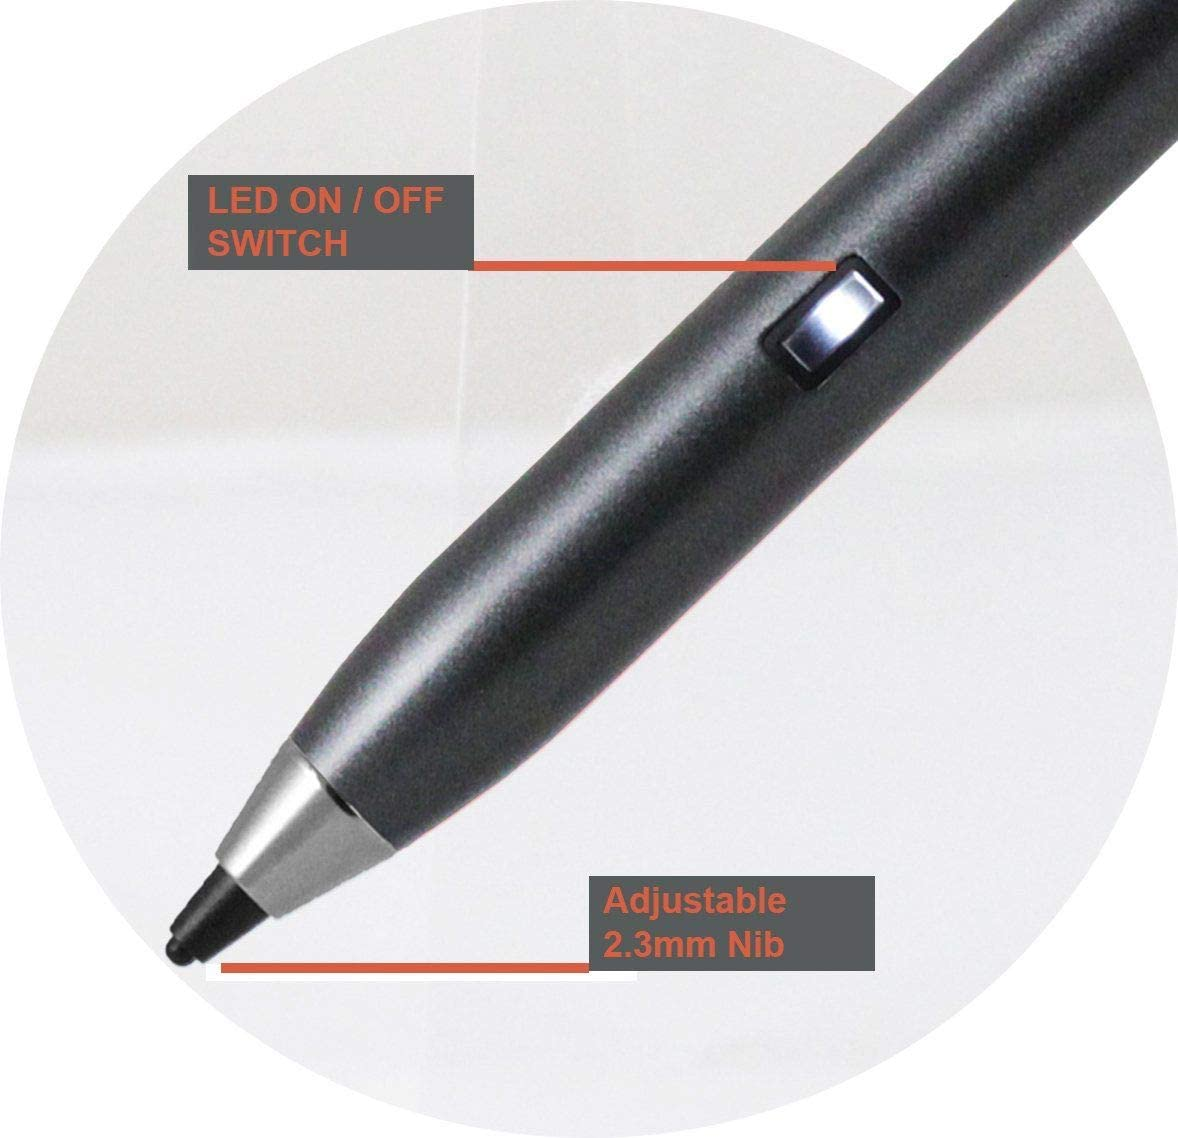 "Huawei MediaPad M5 lite 10 Broonel Grey Fine Point Digital Active Stylus Pen Compatible with The Huawei Mediapad M5 10/"" Huawei MediaPad M5 lite"